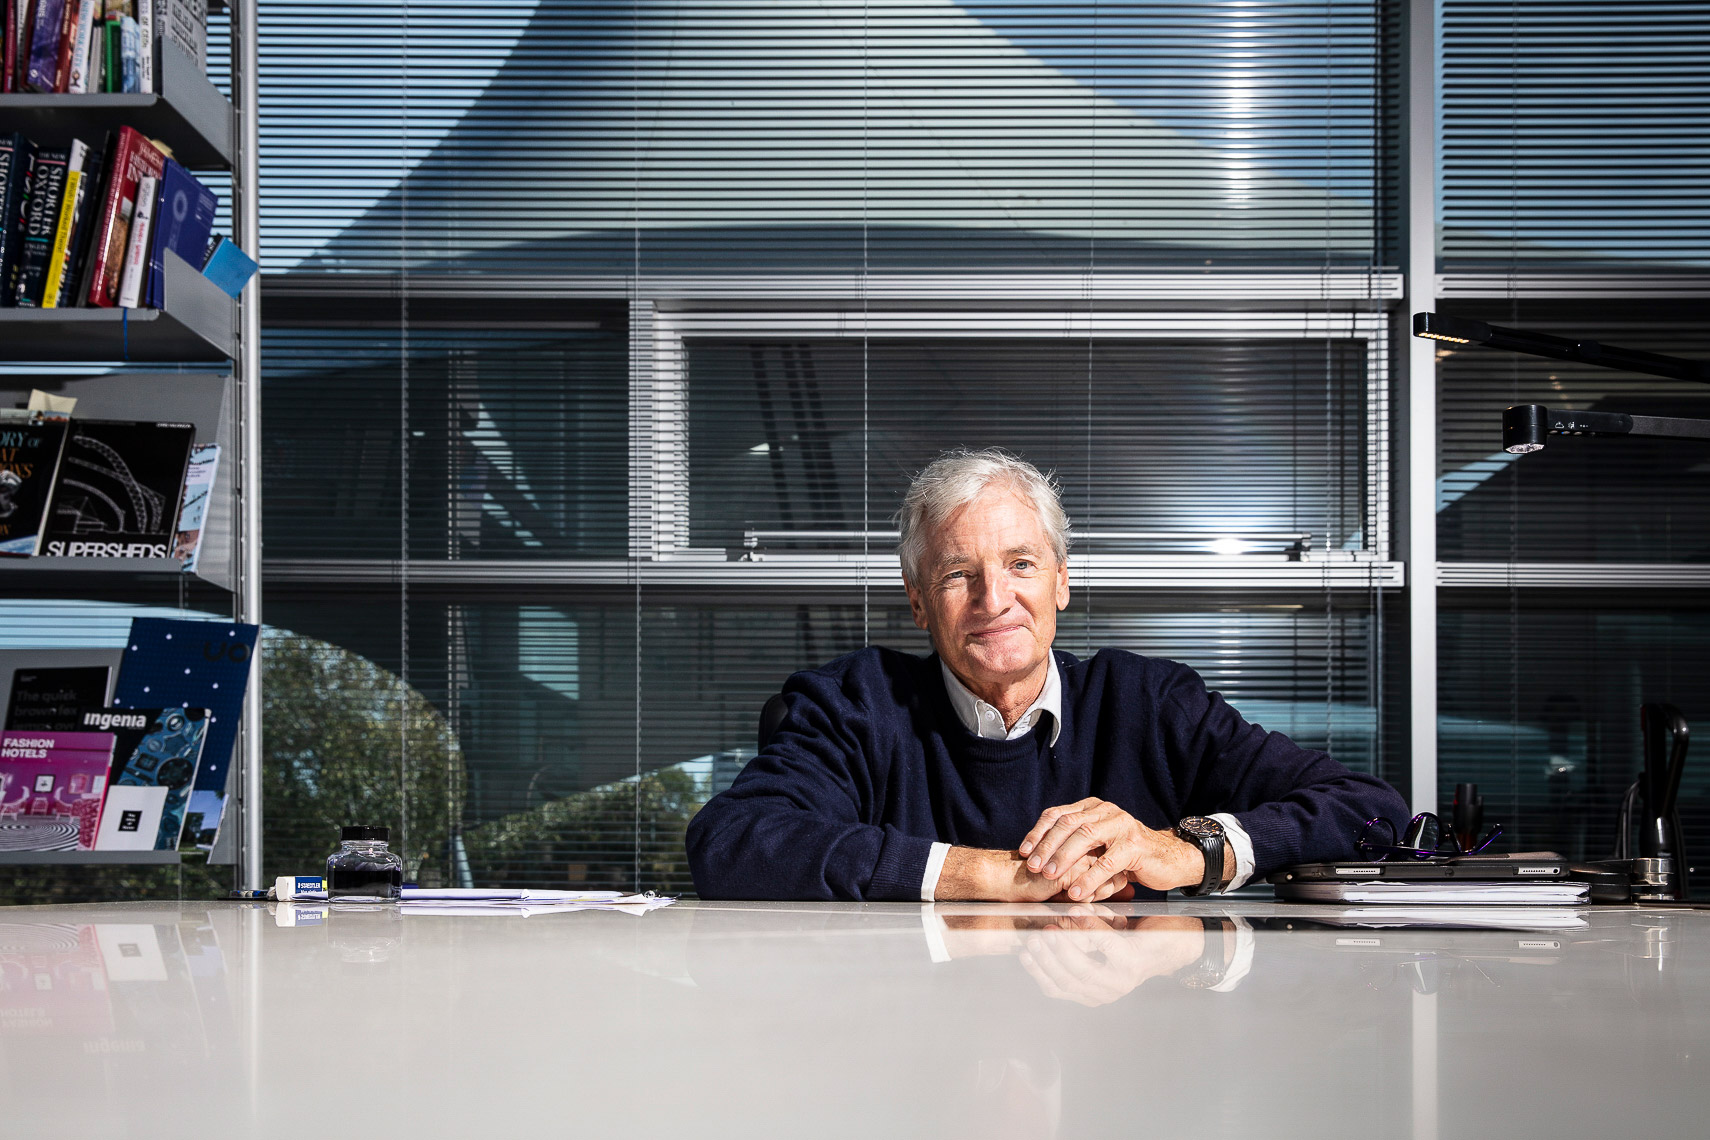 Sir James Dyson OM CBE FRS FREng